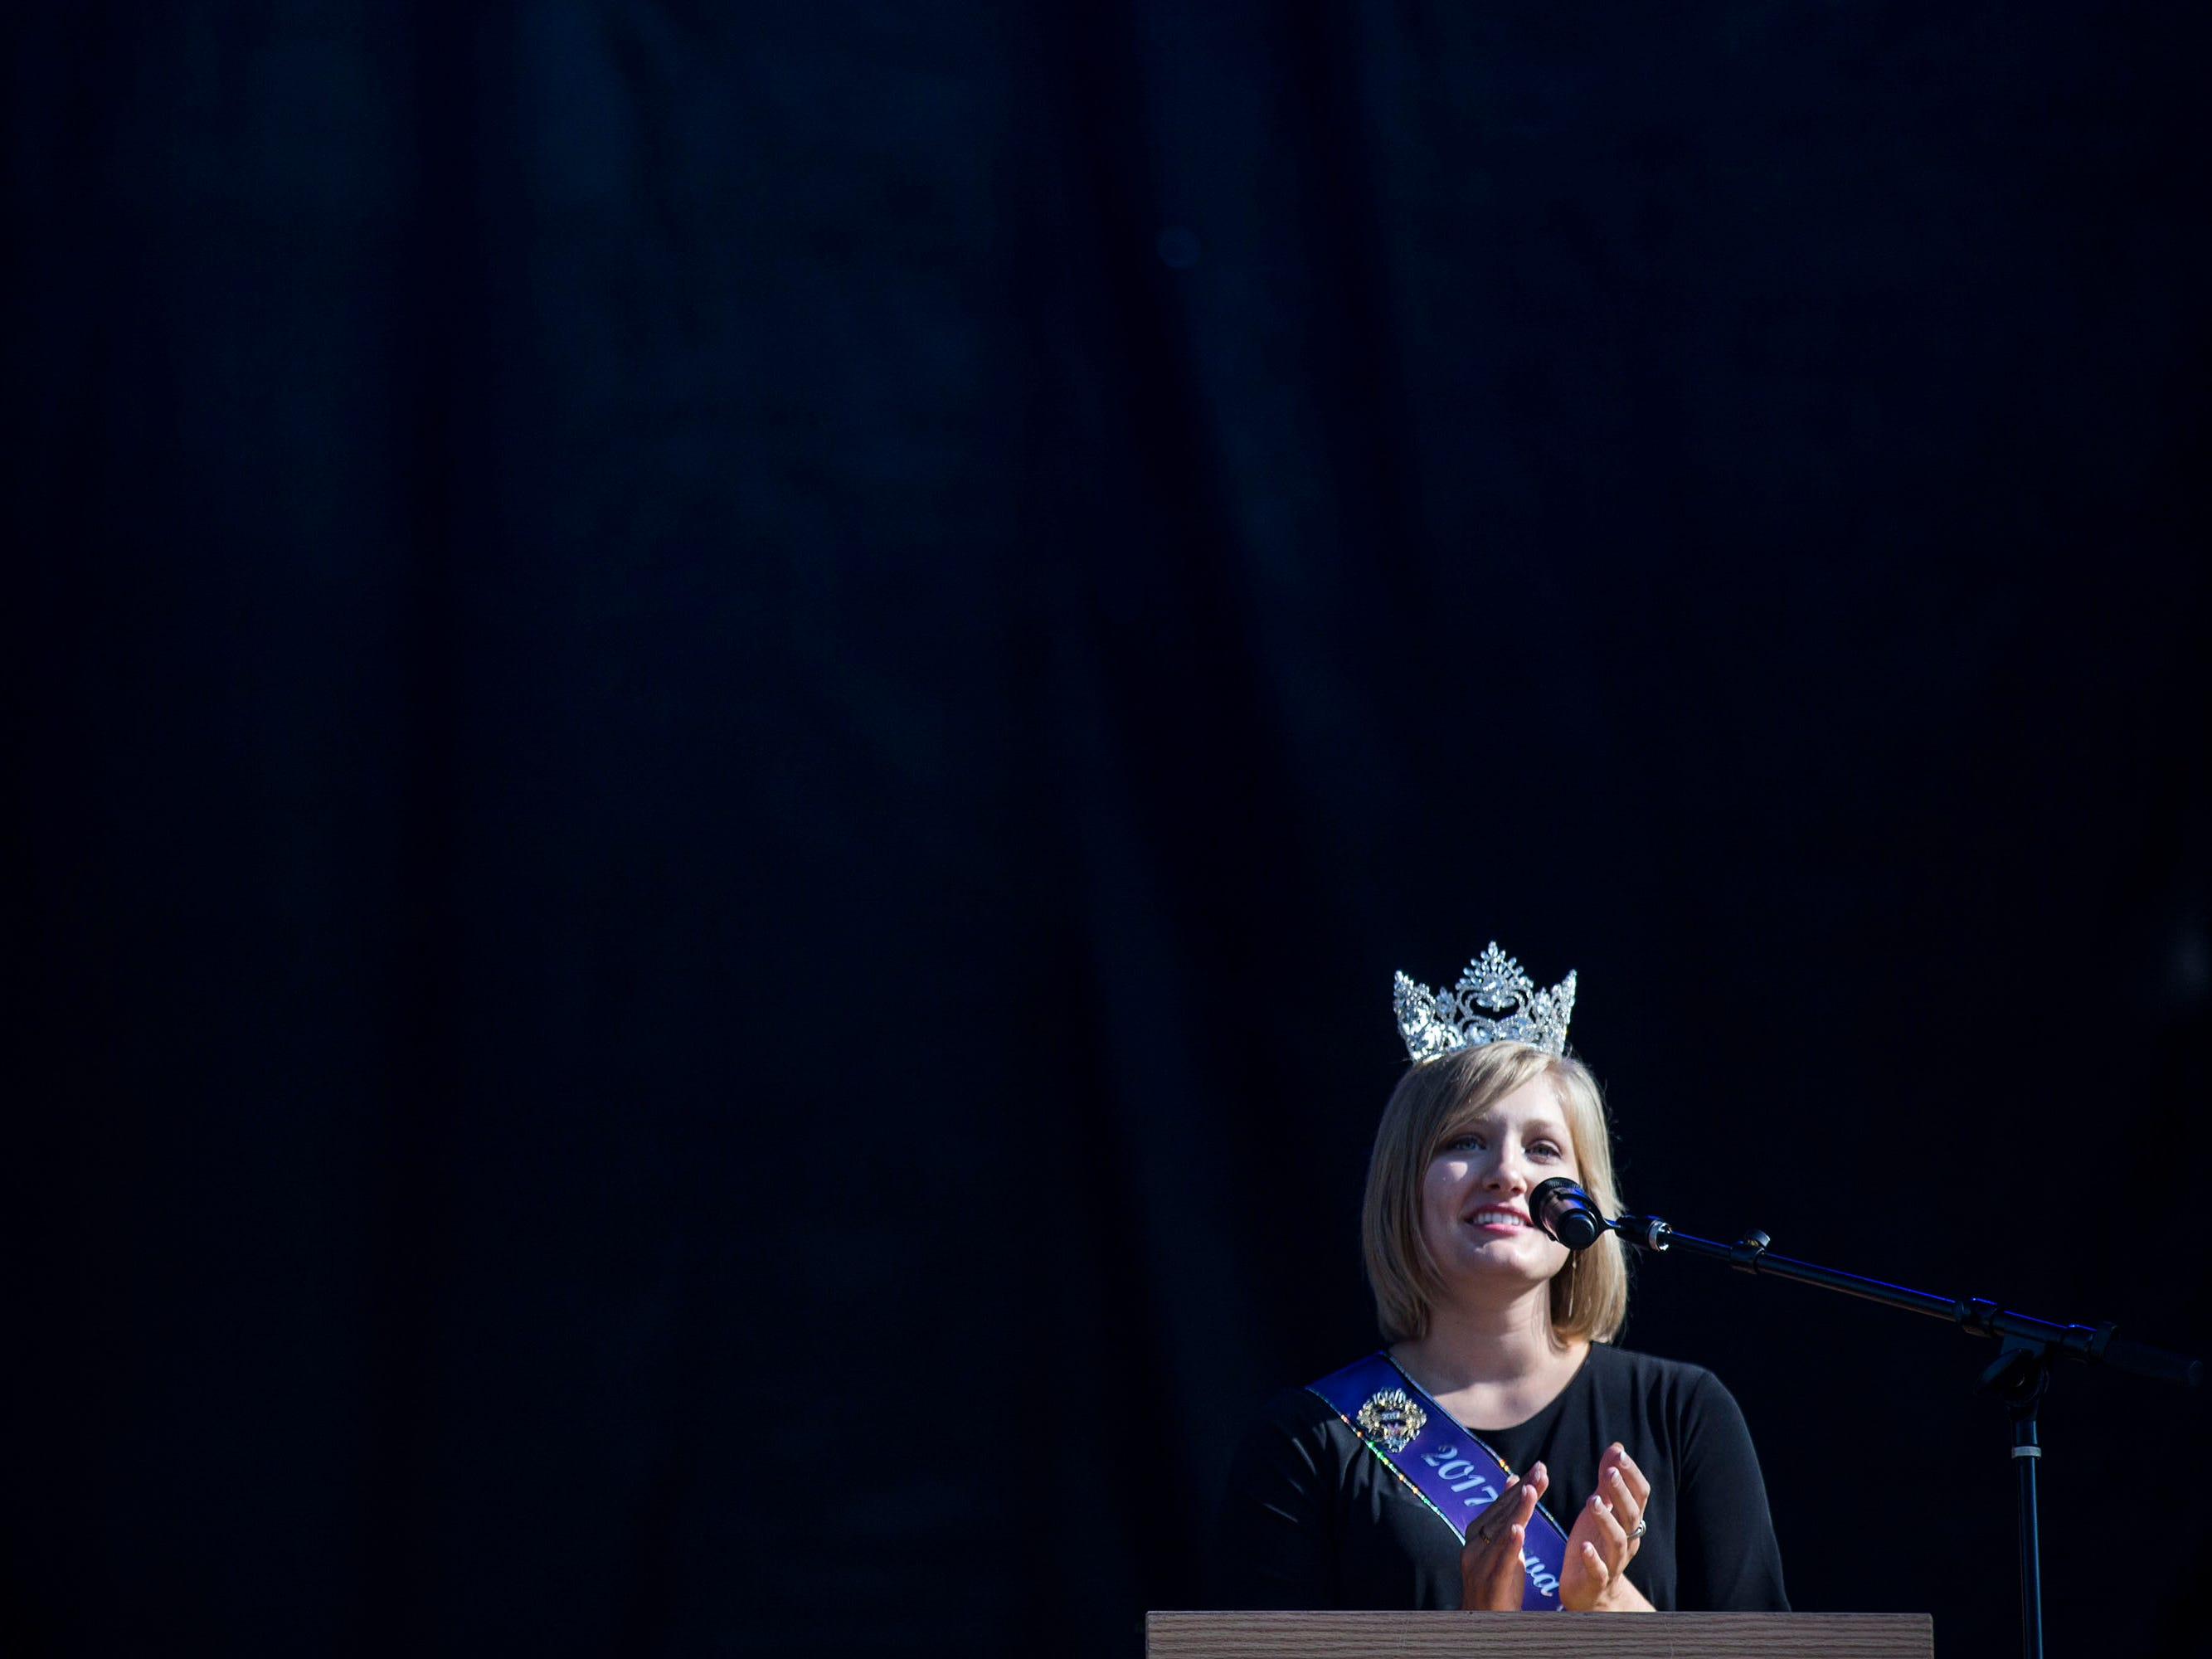 Jacqueline Ehrlich, 2017 Iowa State Fair Queen, speaks to the crowd during the opening ceremony for the Iowa State Fair on Thursday, Aug. 9, 2018, in Des Moines.